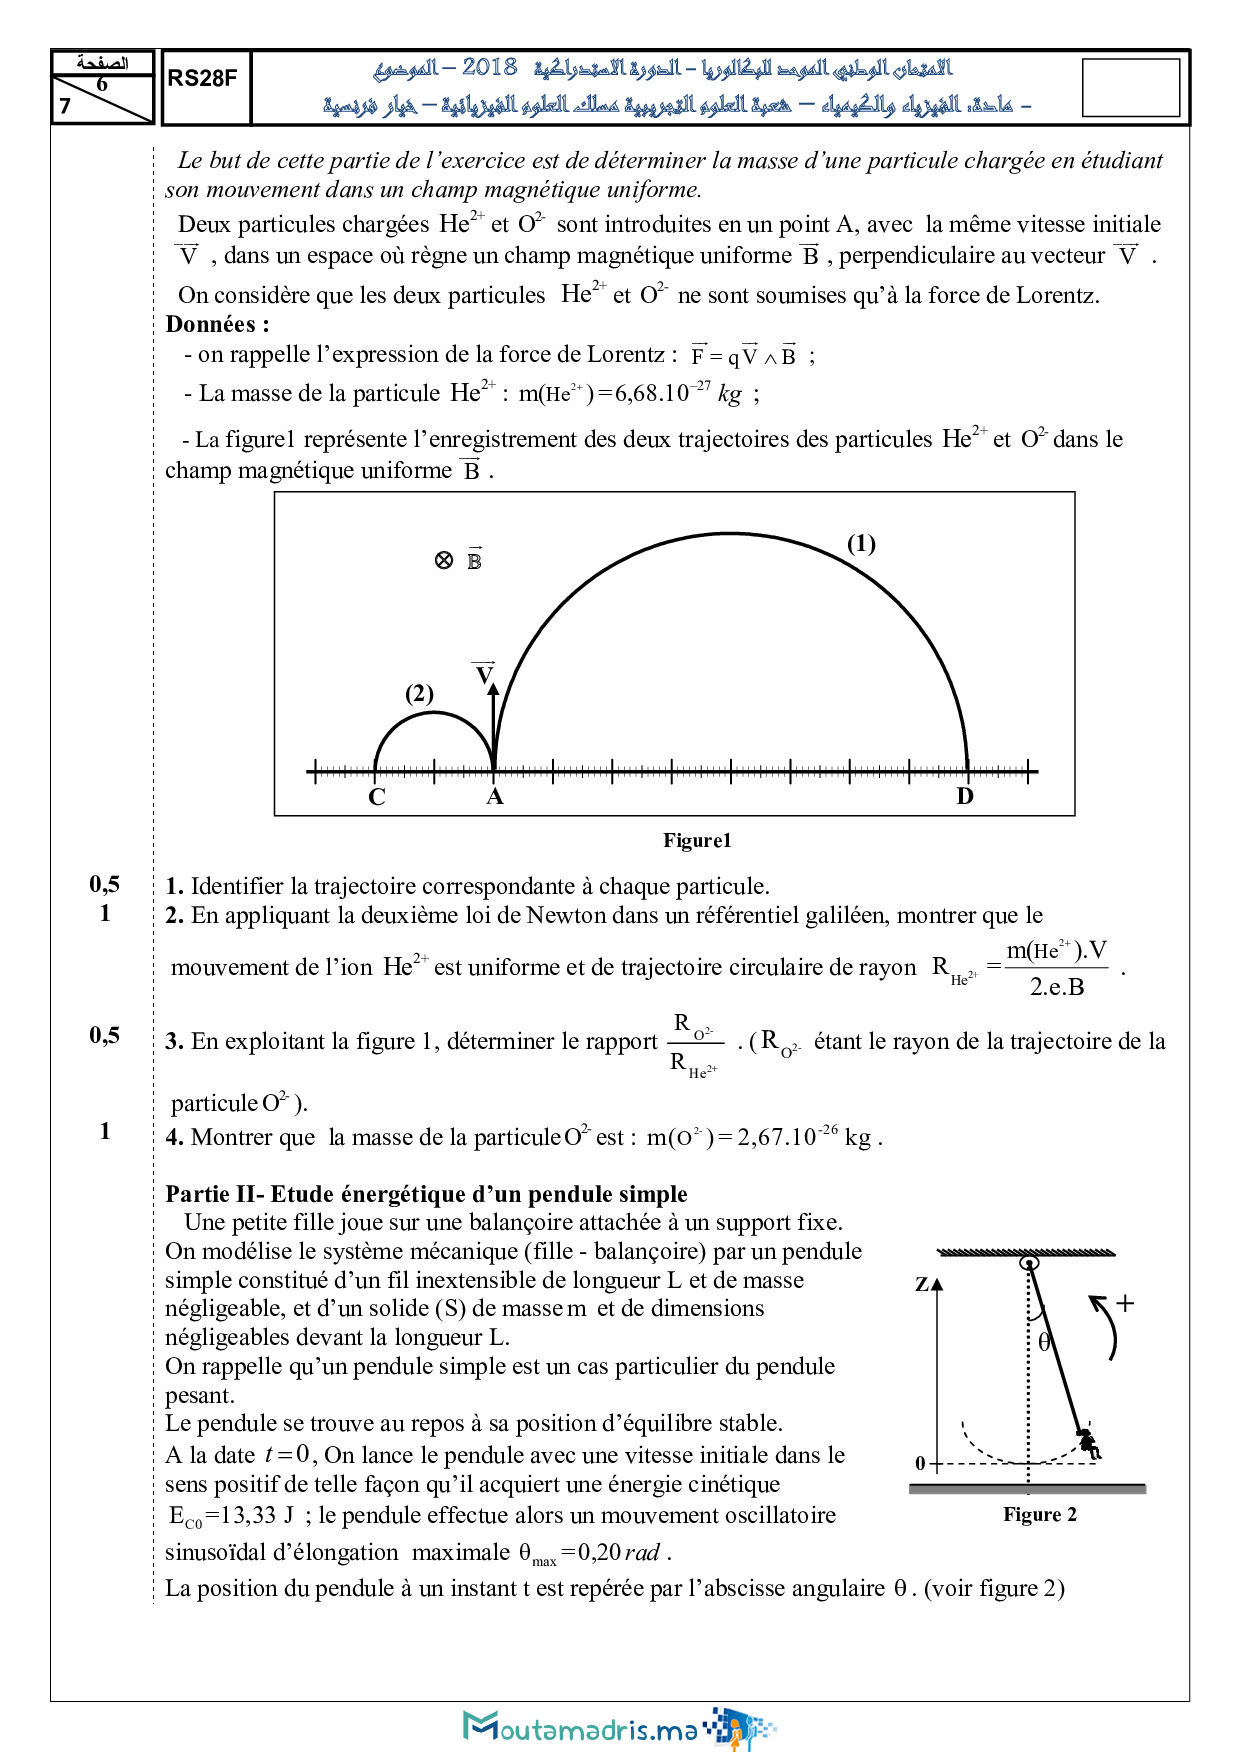 Examen National Physique-Chimie SPC 2018 Rattrapage - Sujet6.jpg